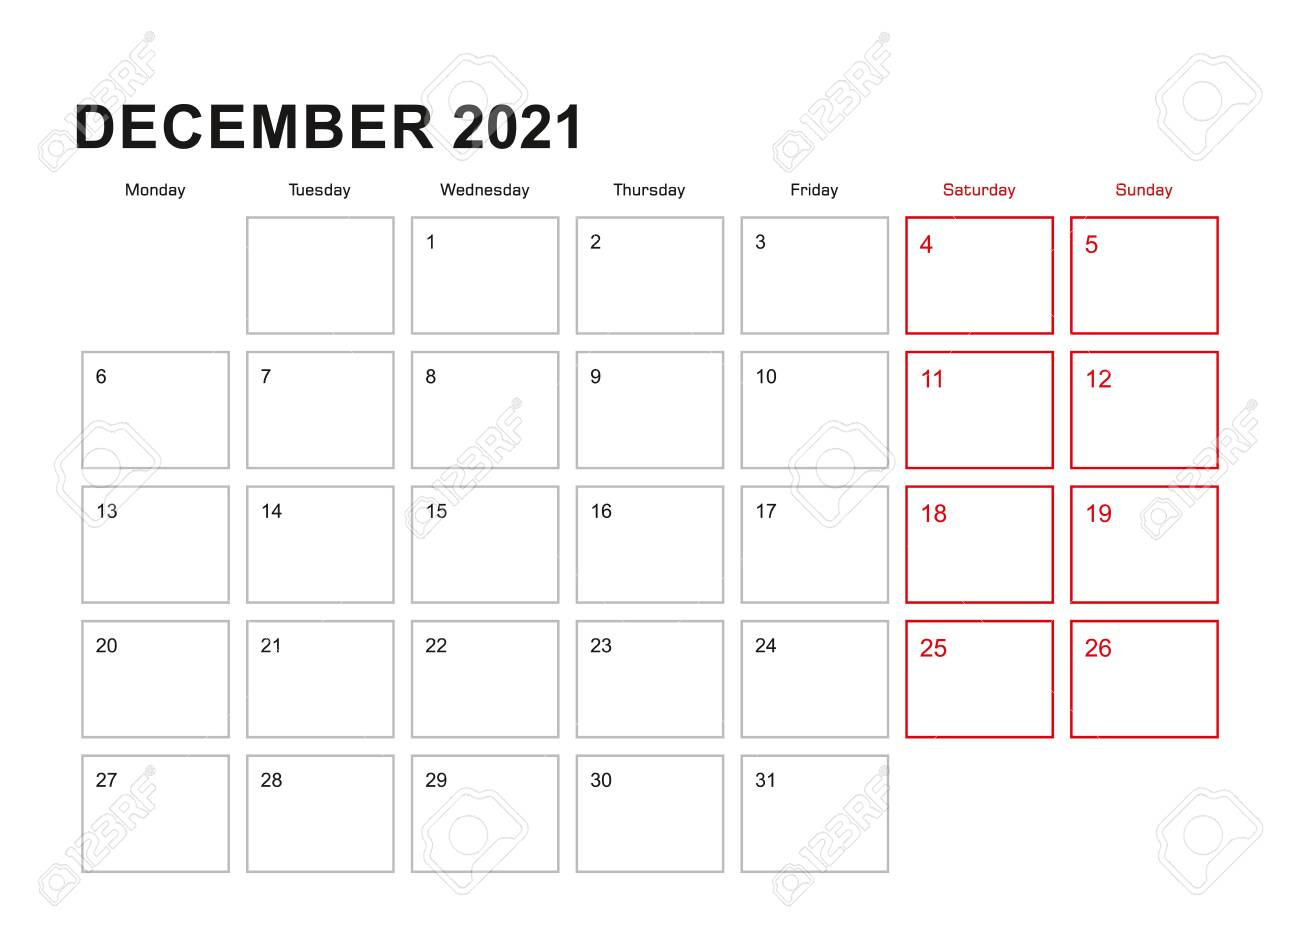 Wall Planner For December 2021 In English Language Week Starts..